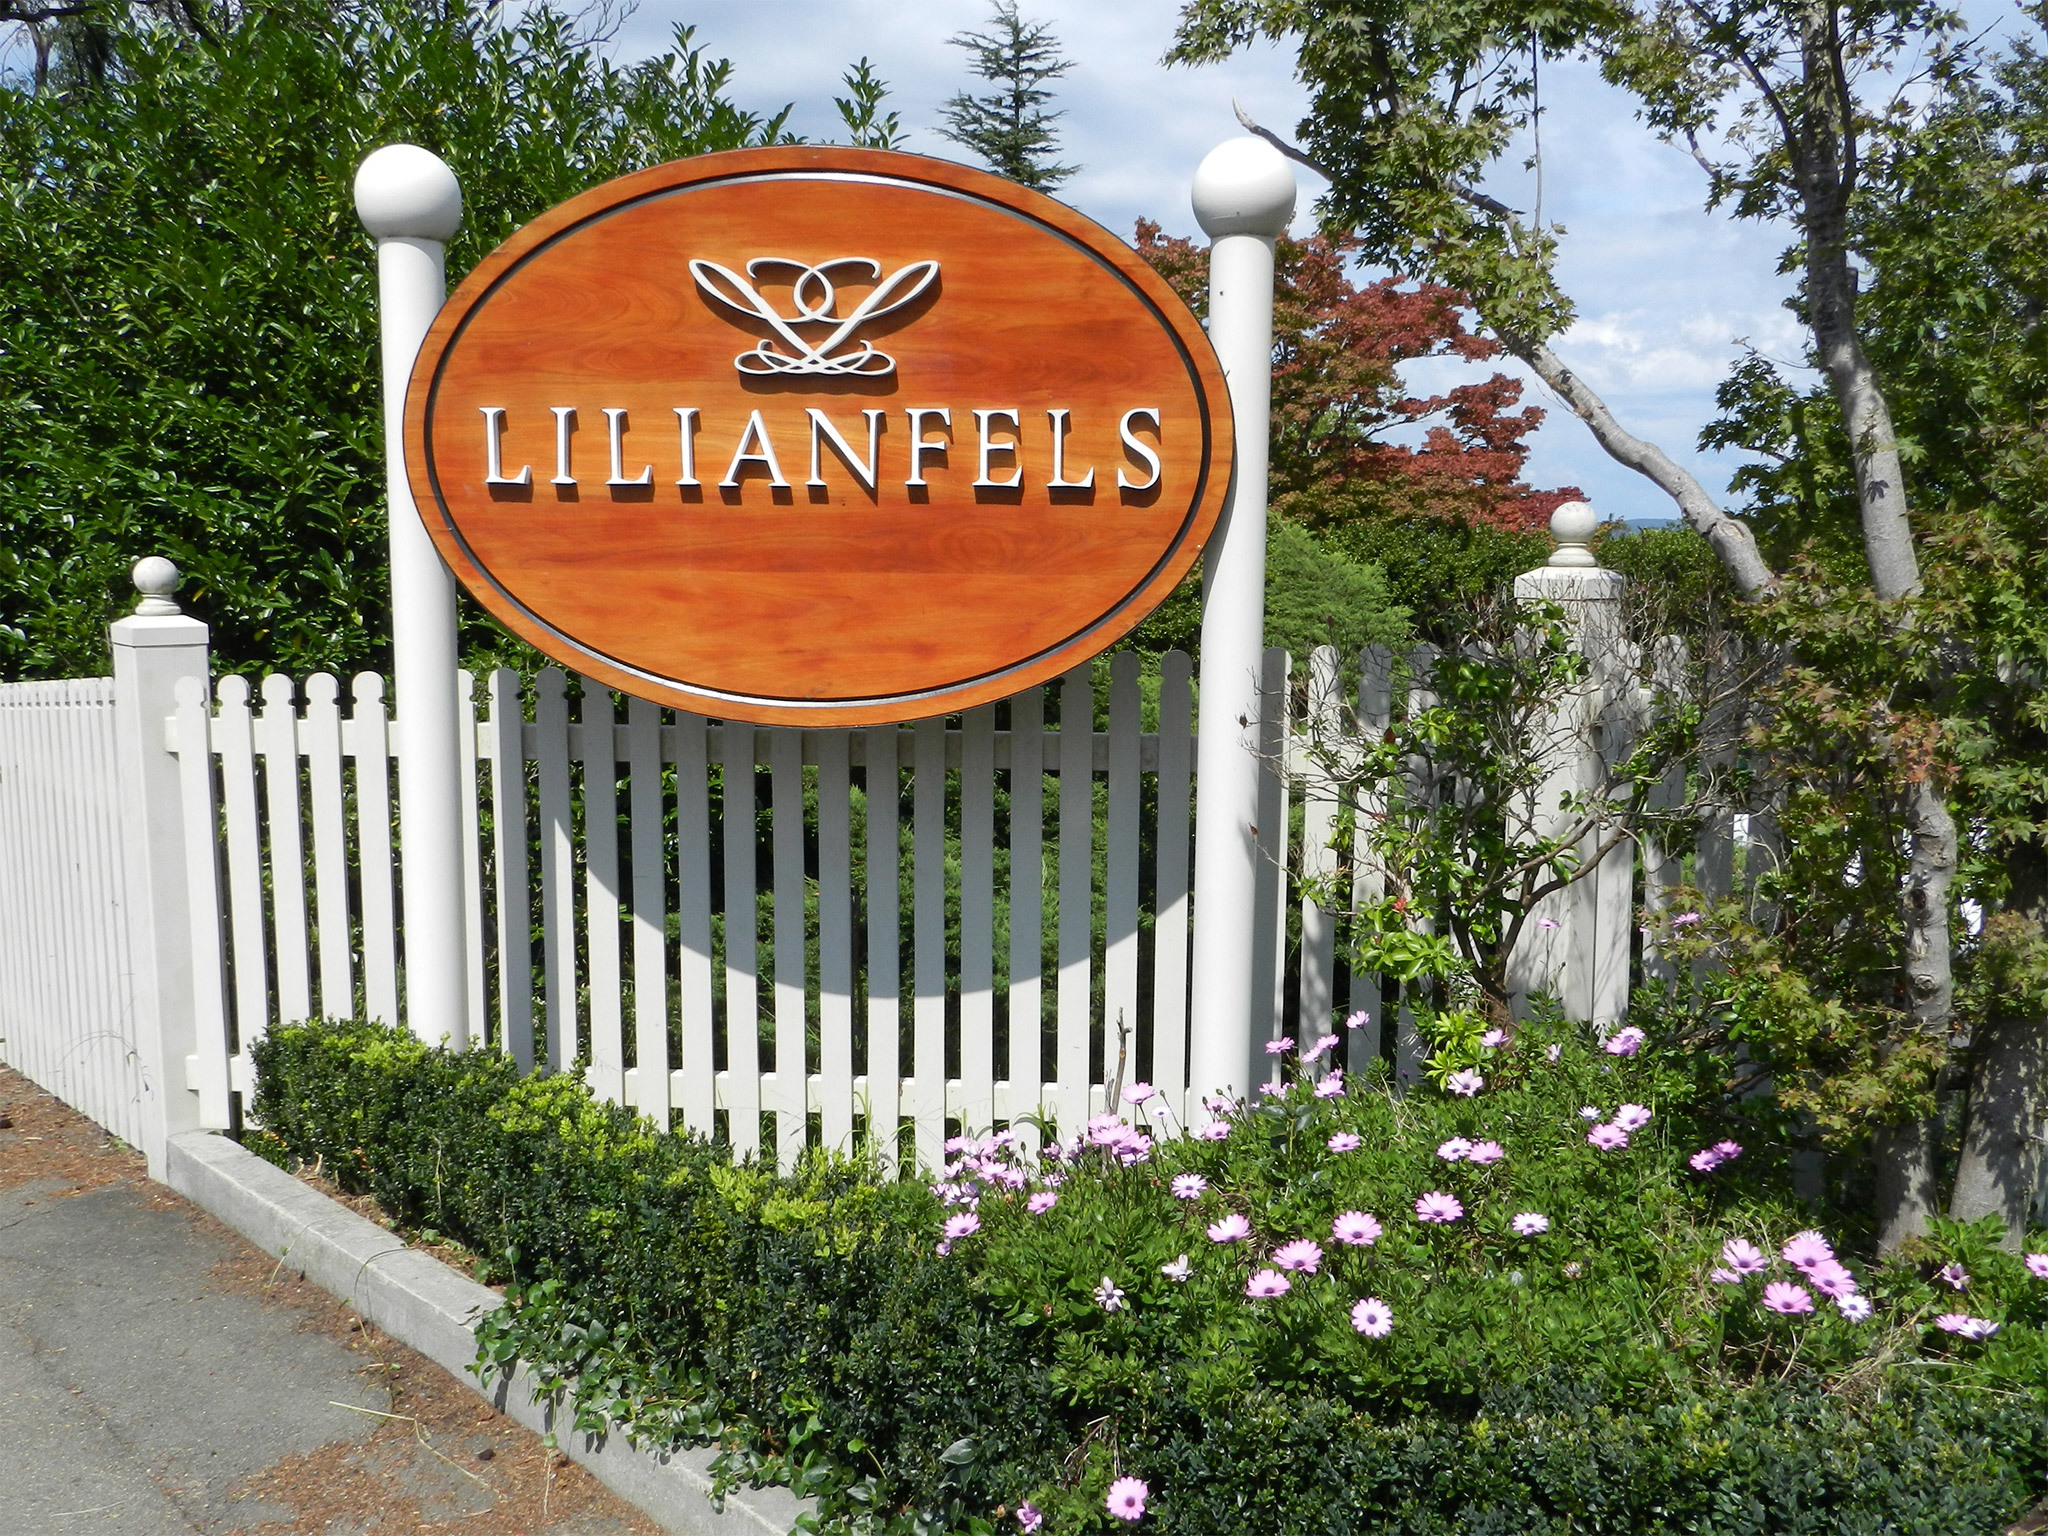 The welcome sign at Lilianfels Resort